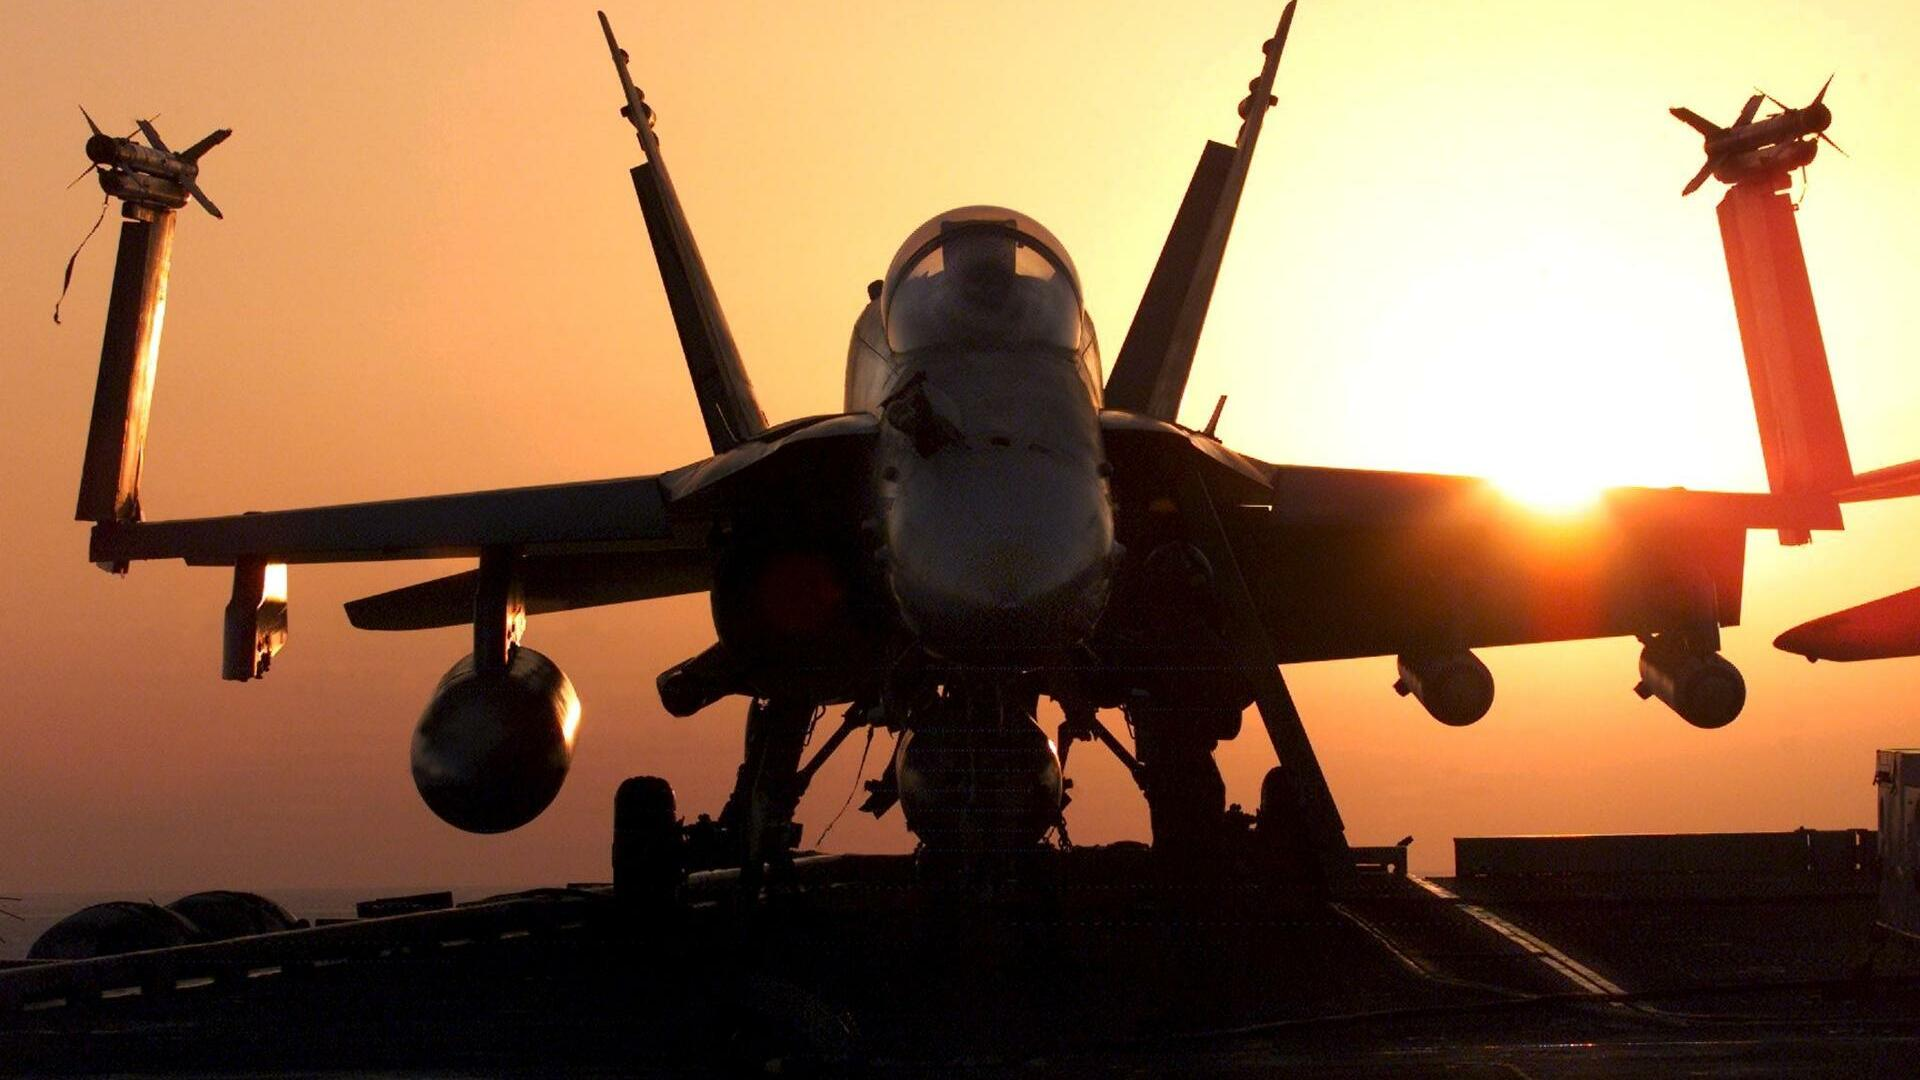 U.S. Navy F-18 Hornet jet fighter Quelle: REUTERS